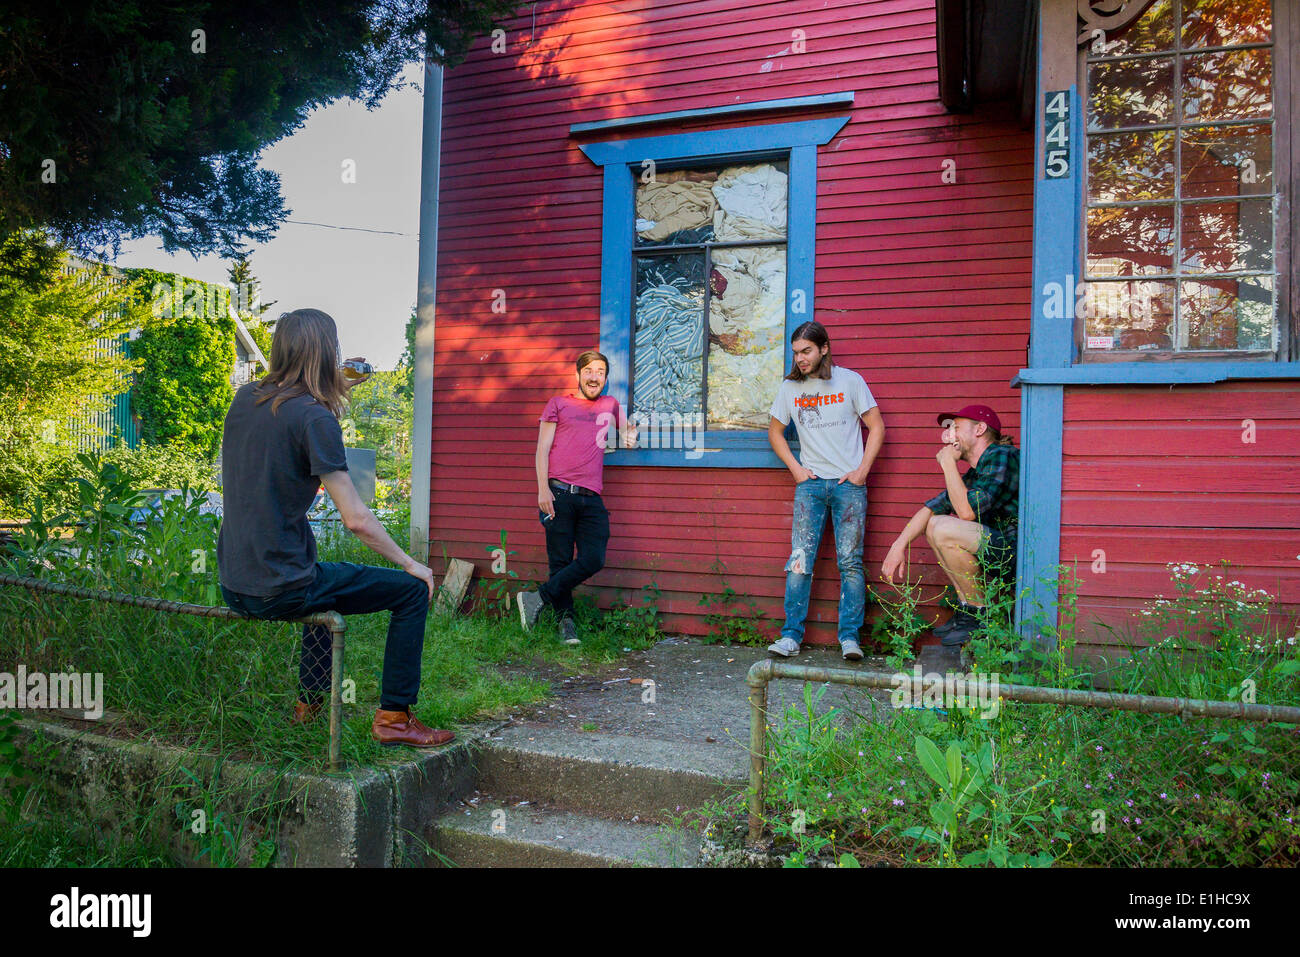 Guys hanging out in the front yard, Strathcona neighbourhood, Vancouver, British Columbia, Canada - Stock Image